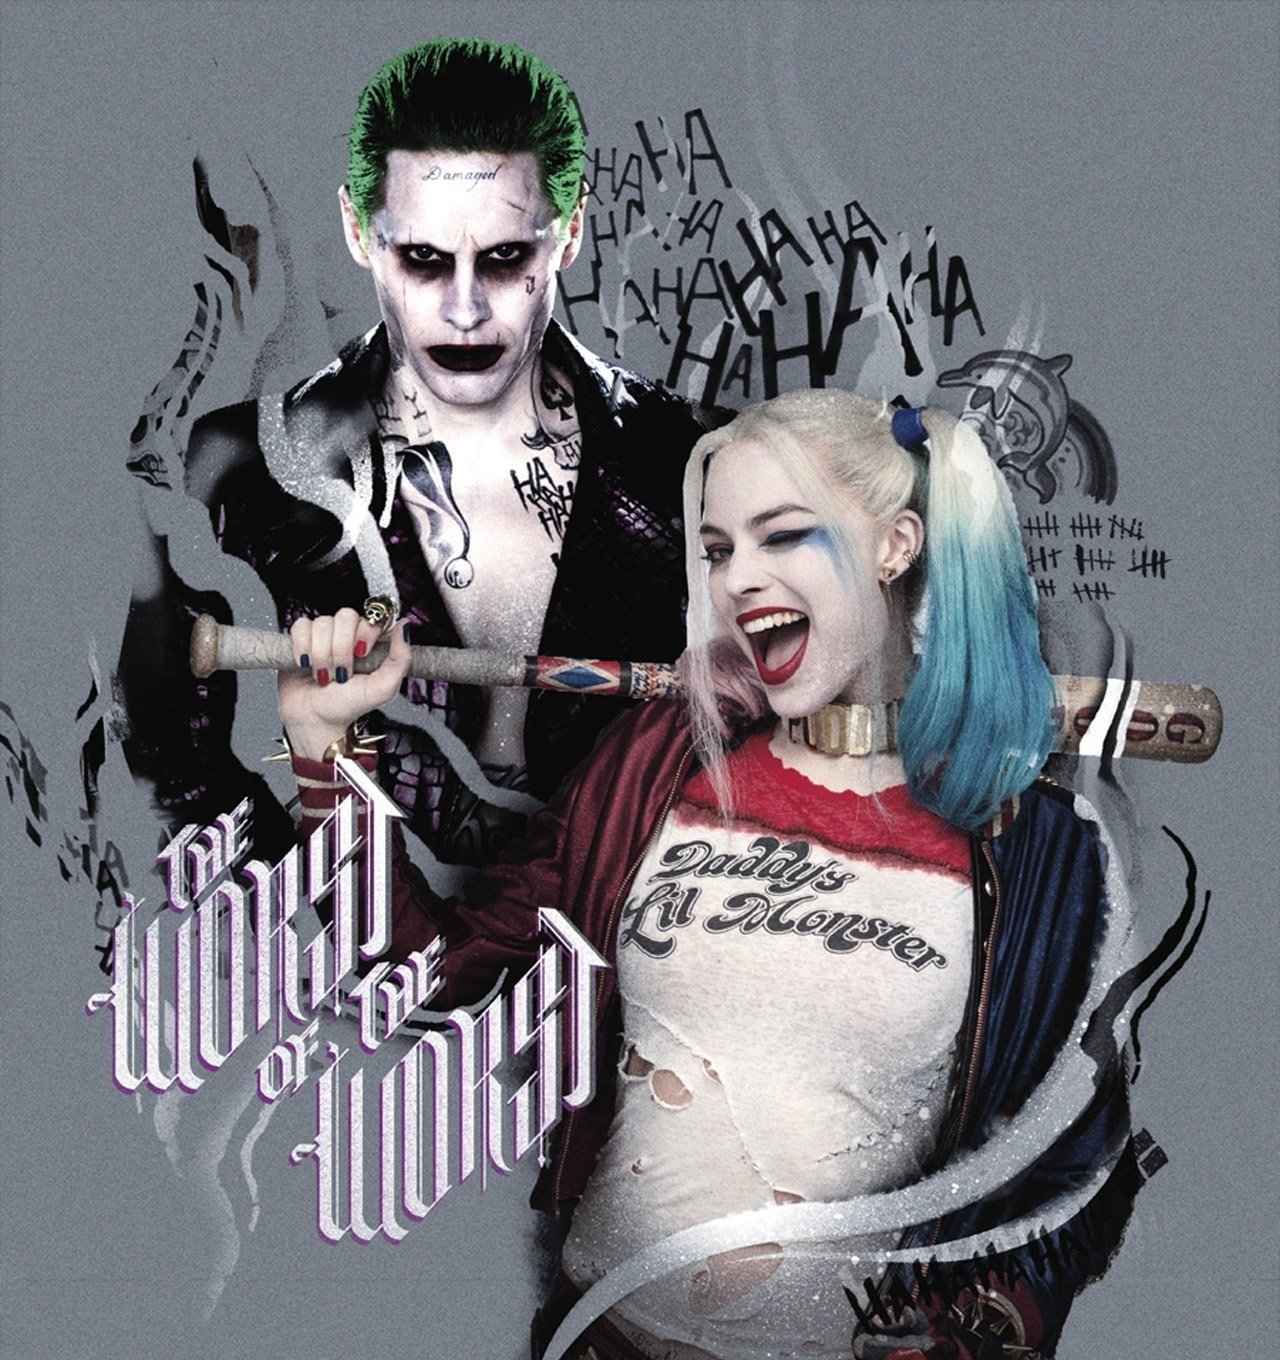 Awesome New Suicide Squad Promo Art Features The Joker, Harley Quinn, And More